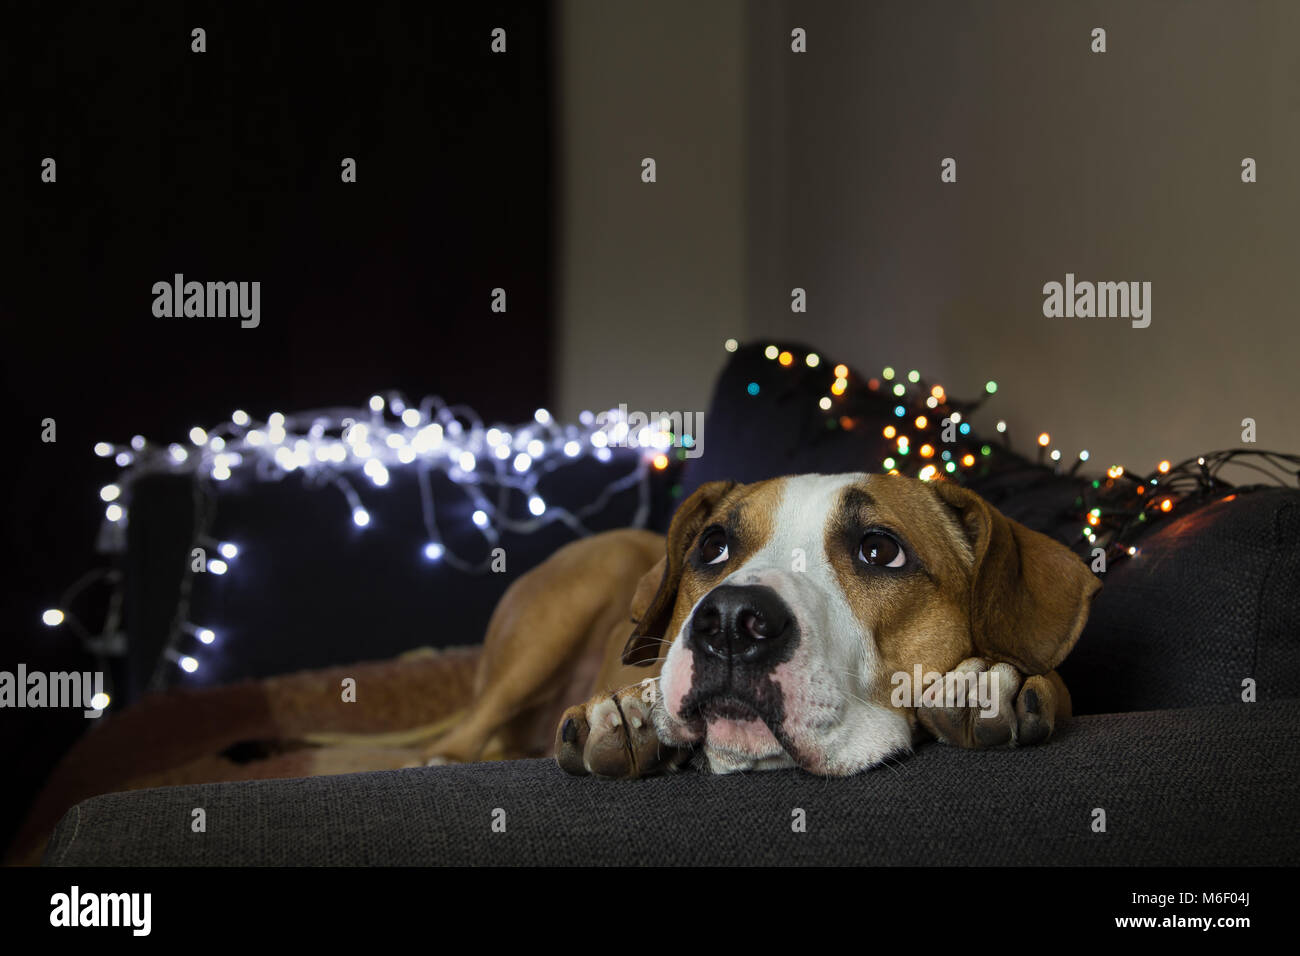 Dog on couch in cozy room with christmas tree set looking up - Stock Image